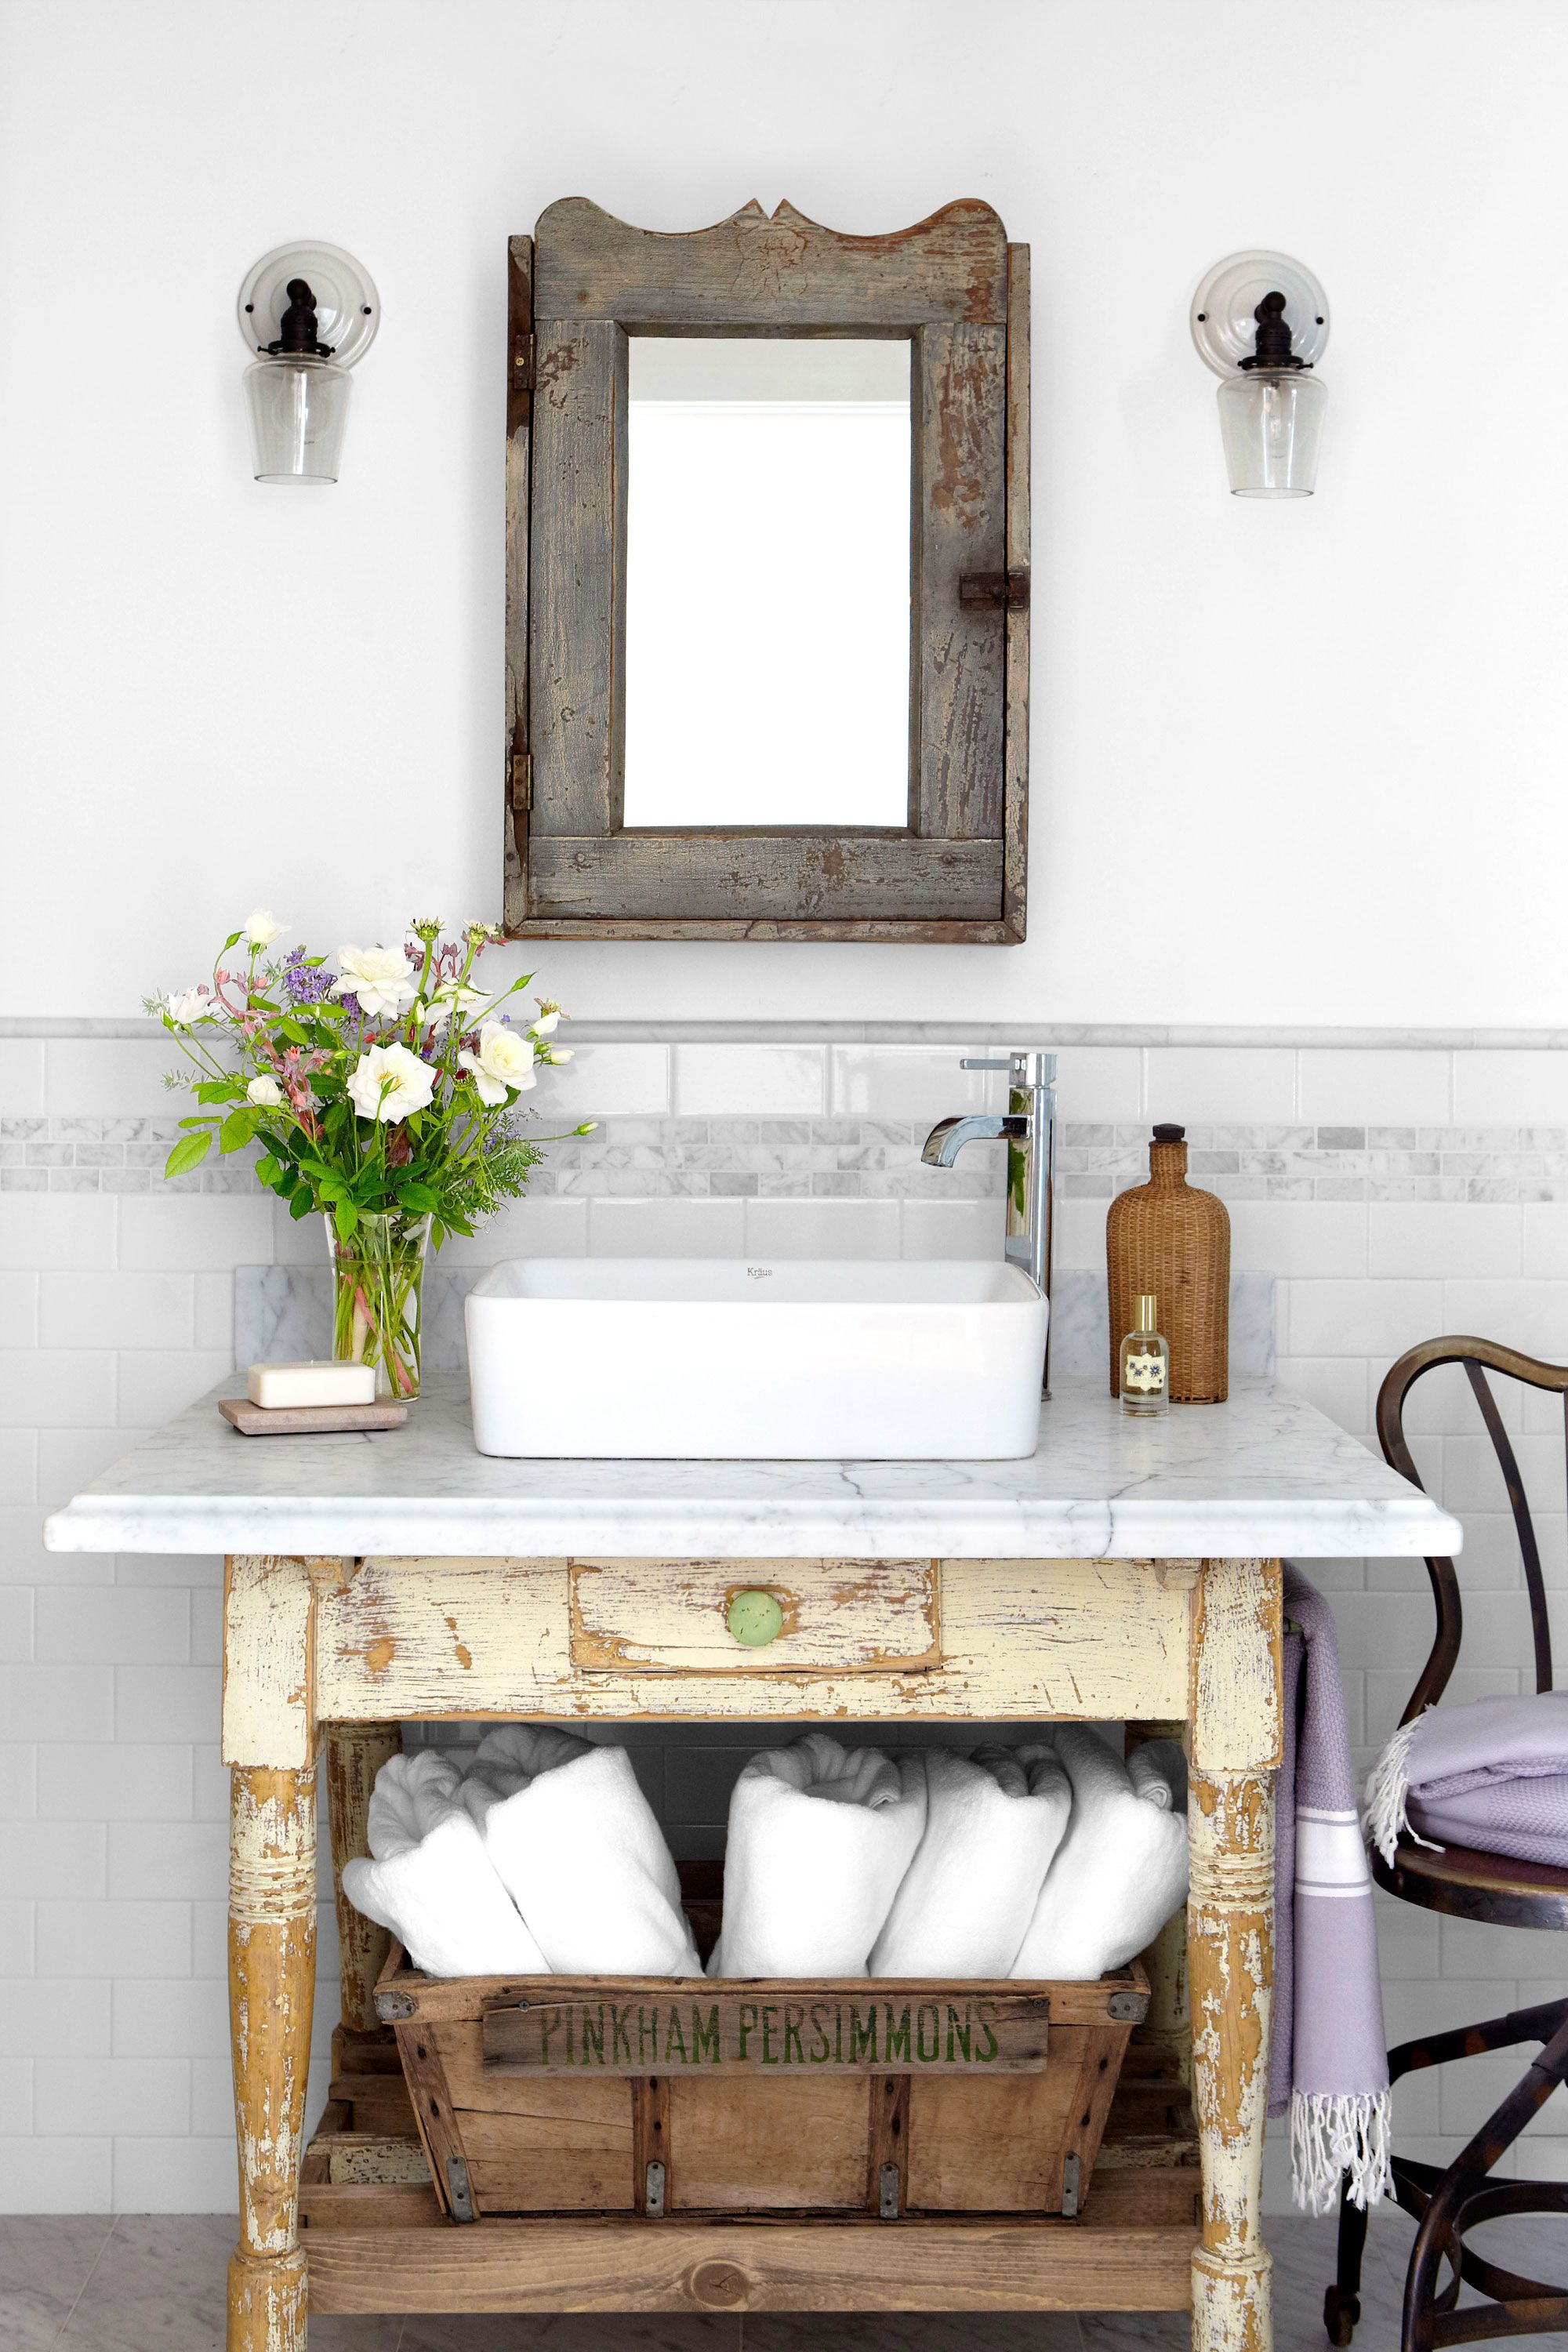 Bathroom Vanity Renovation Ideas: Here's The Only Home Renovation List You'll Need